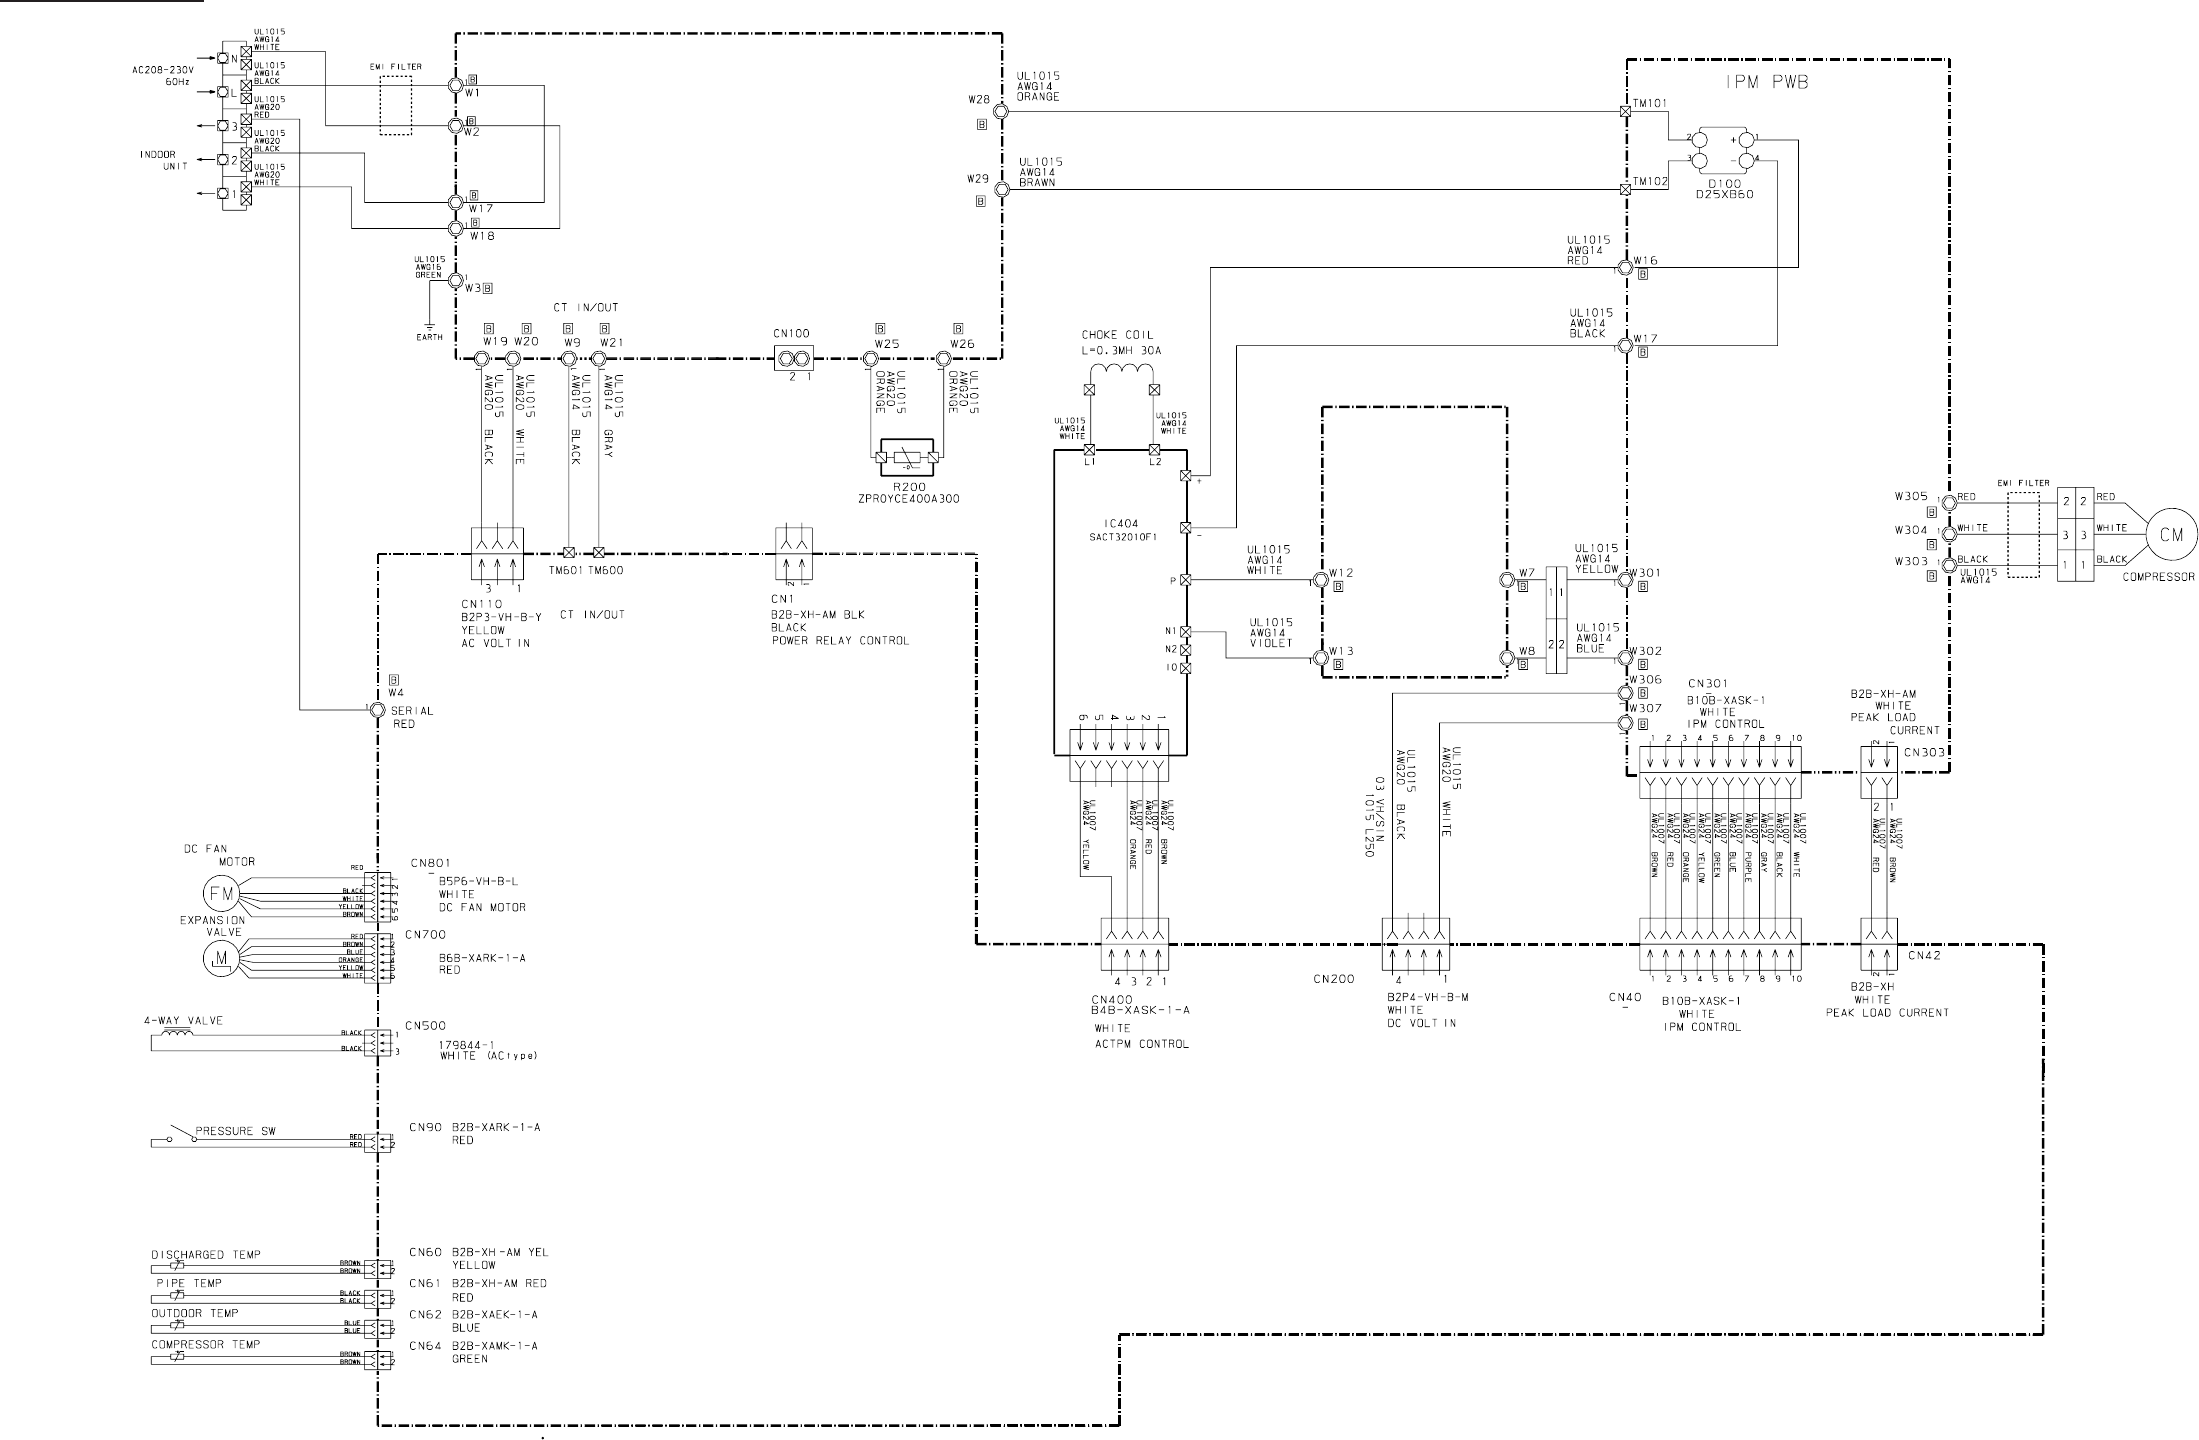 Fujitsu Asu36clx Wiring Diagram Custom Images Gallery Page 10 Of Air Conditioner User Guide Rh Homeappliance Manualsonline Com